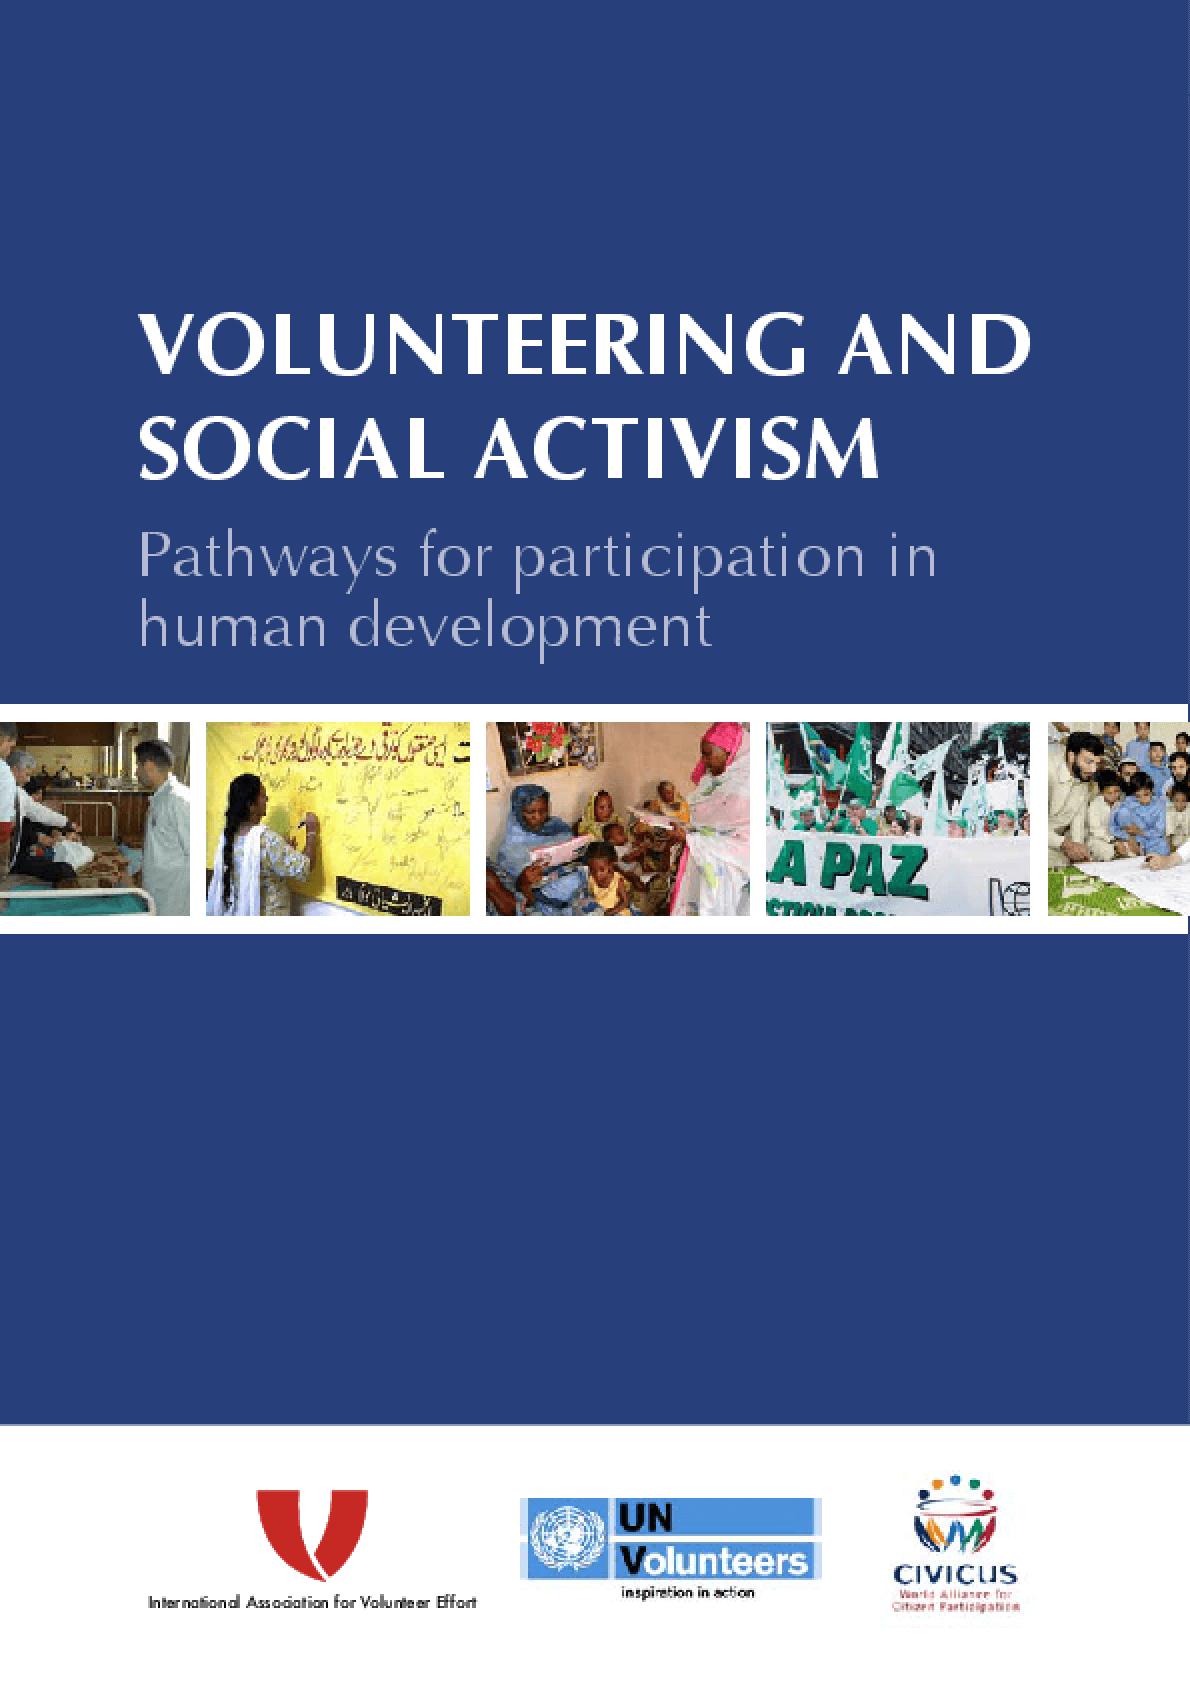 Volunteering and Social Activism: Pathways for Participation in Human Development